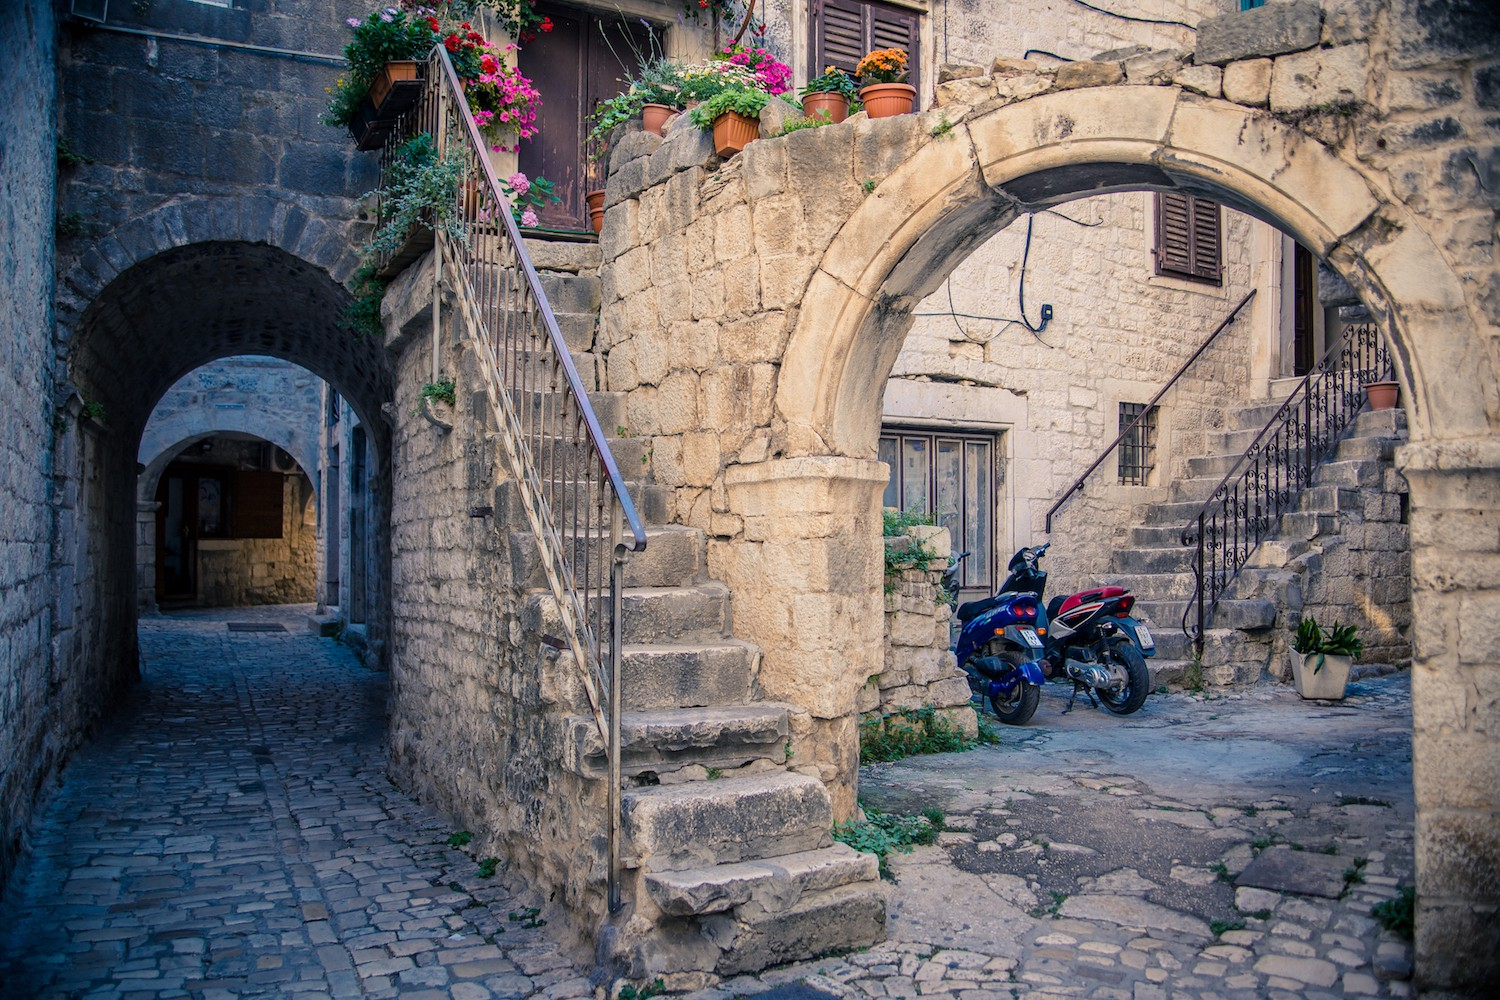 A double arch in the medieval city of Trogir, Croatia